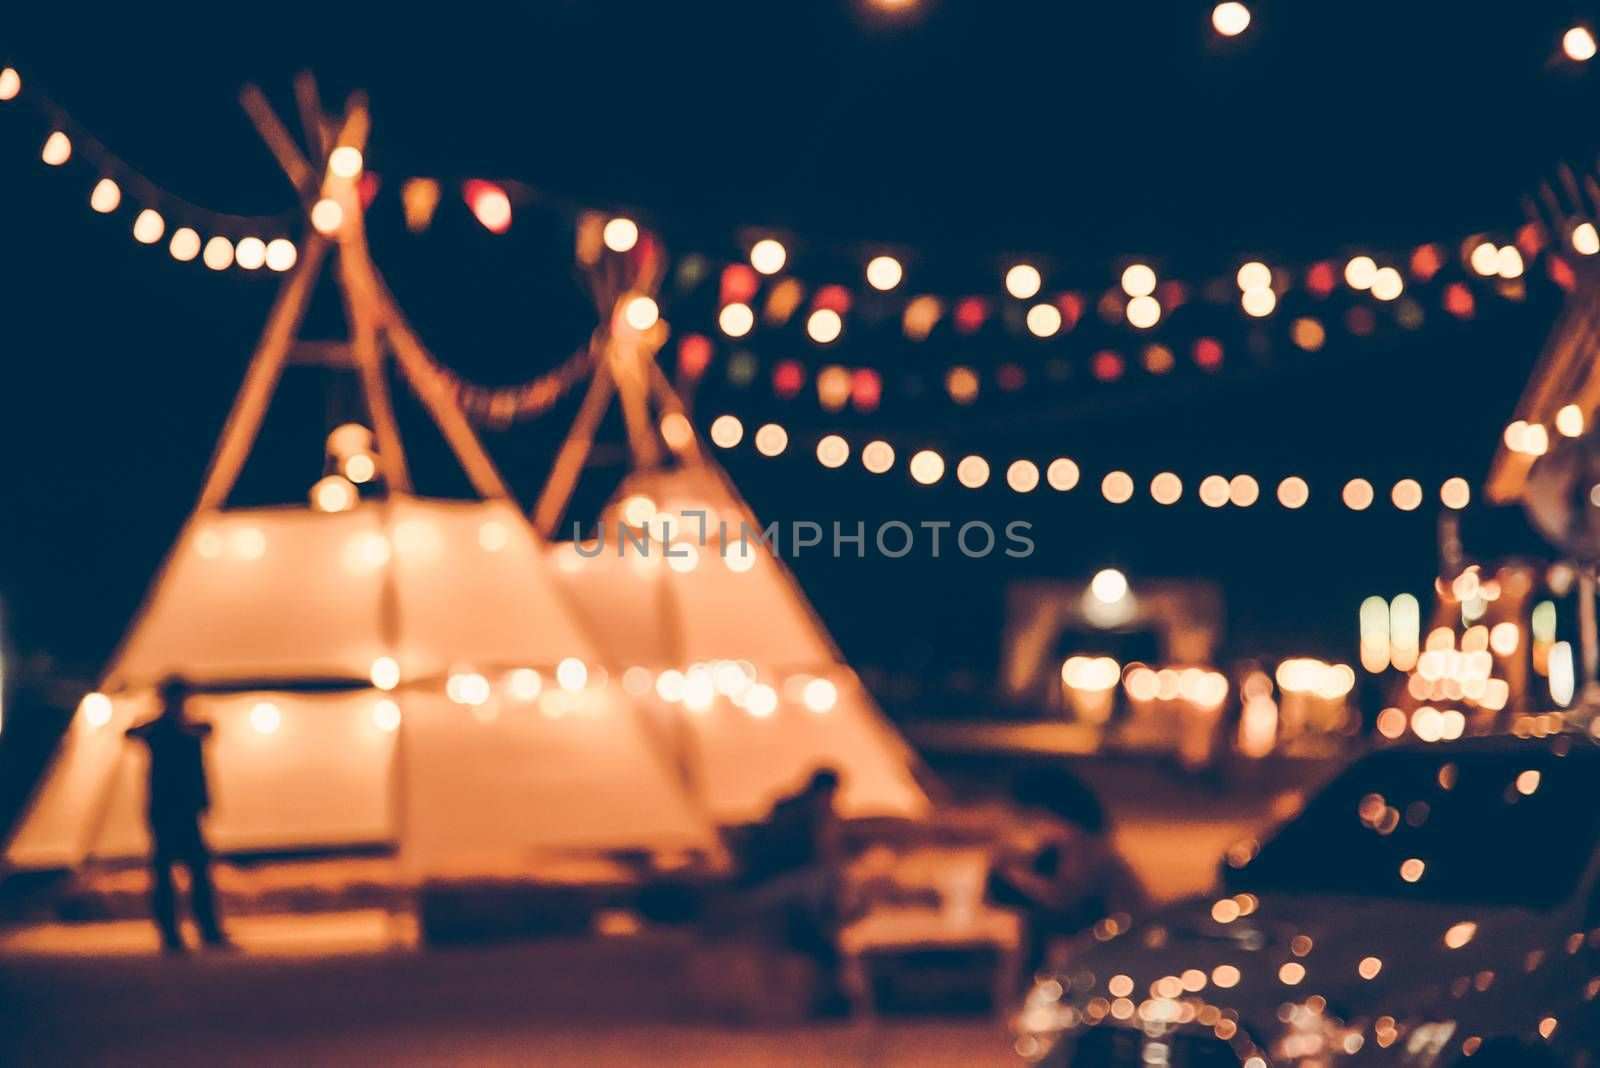 Blurred images of the background party in the festive festivities during the night, consisting of people and glittering bokeh.